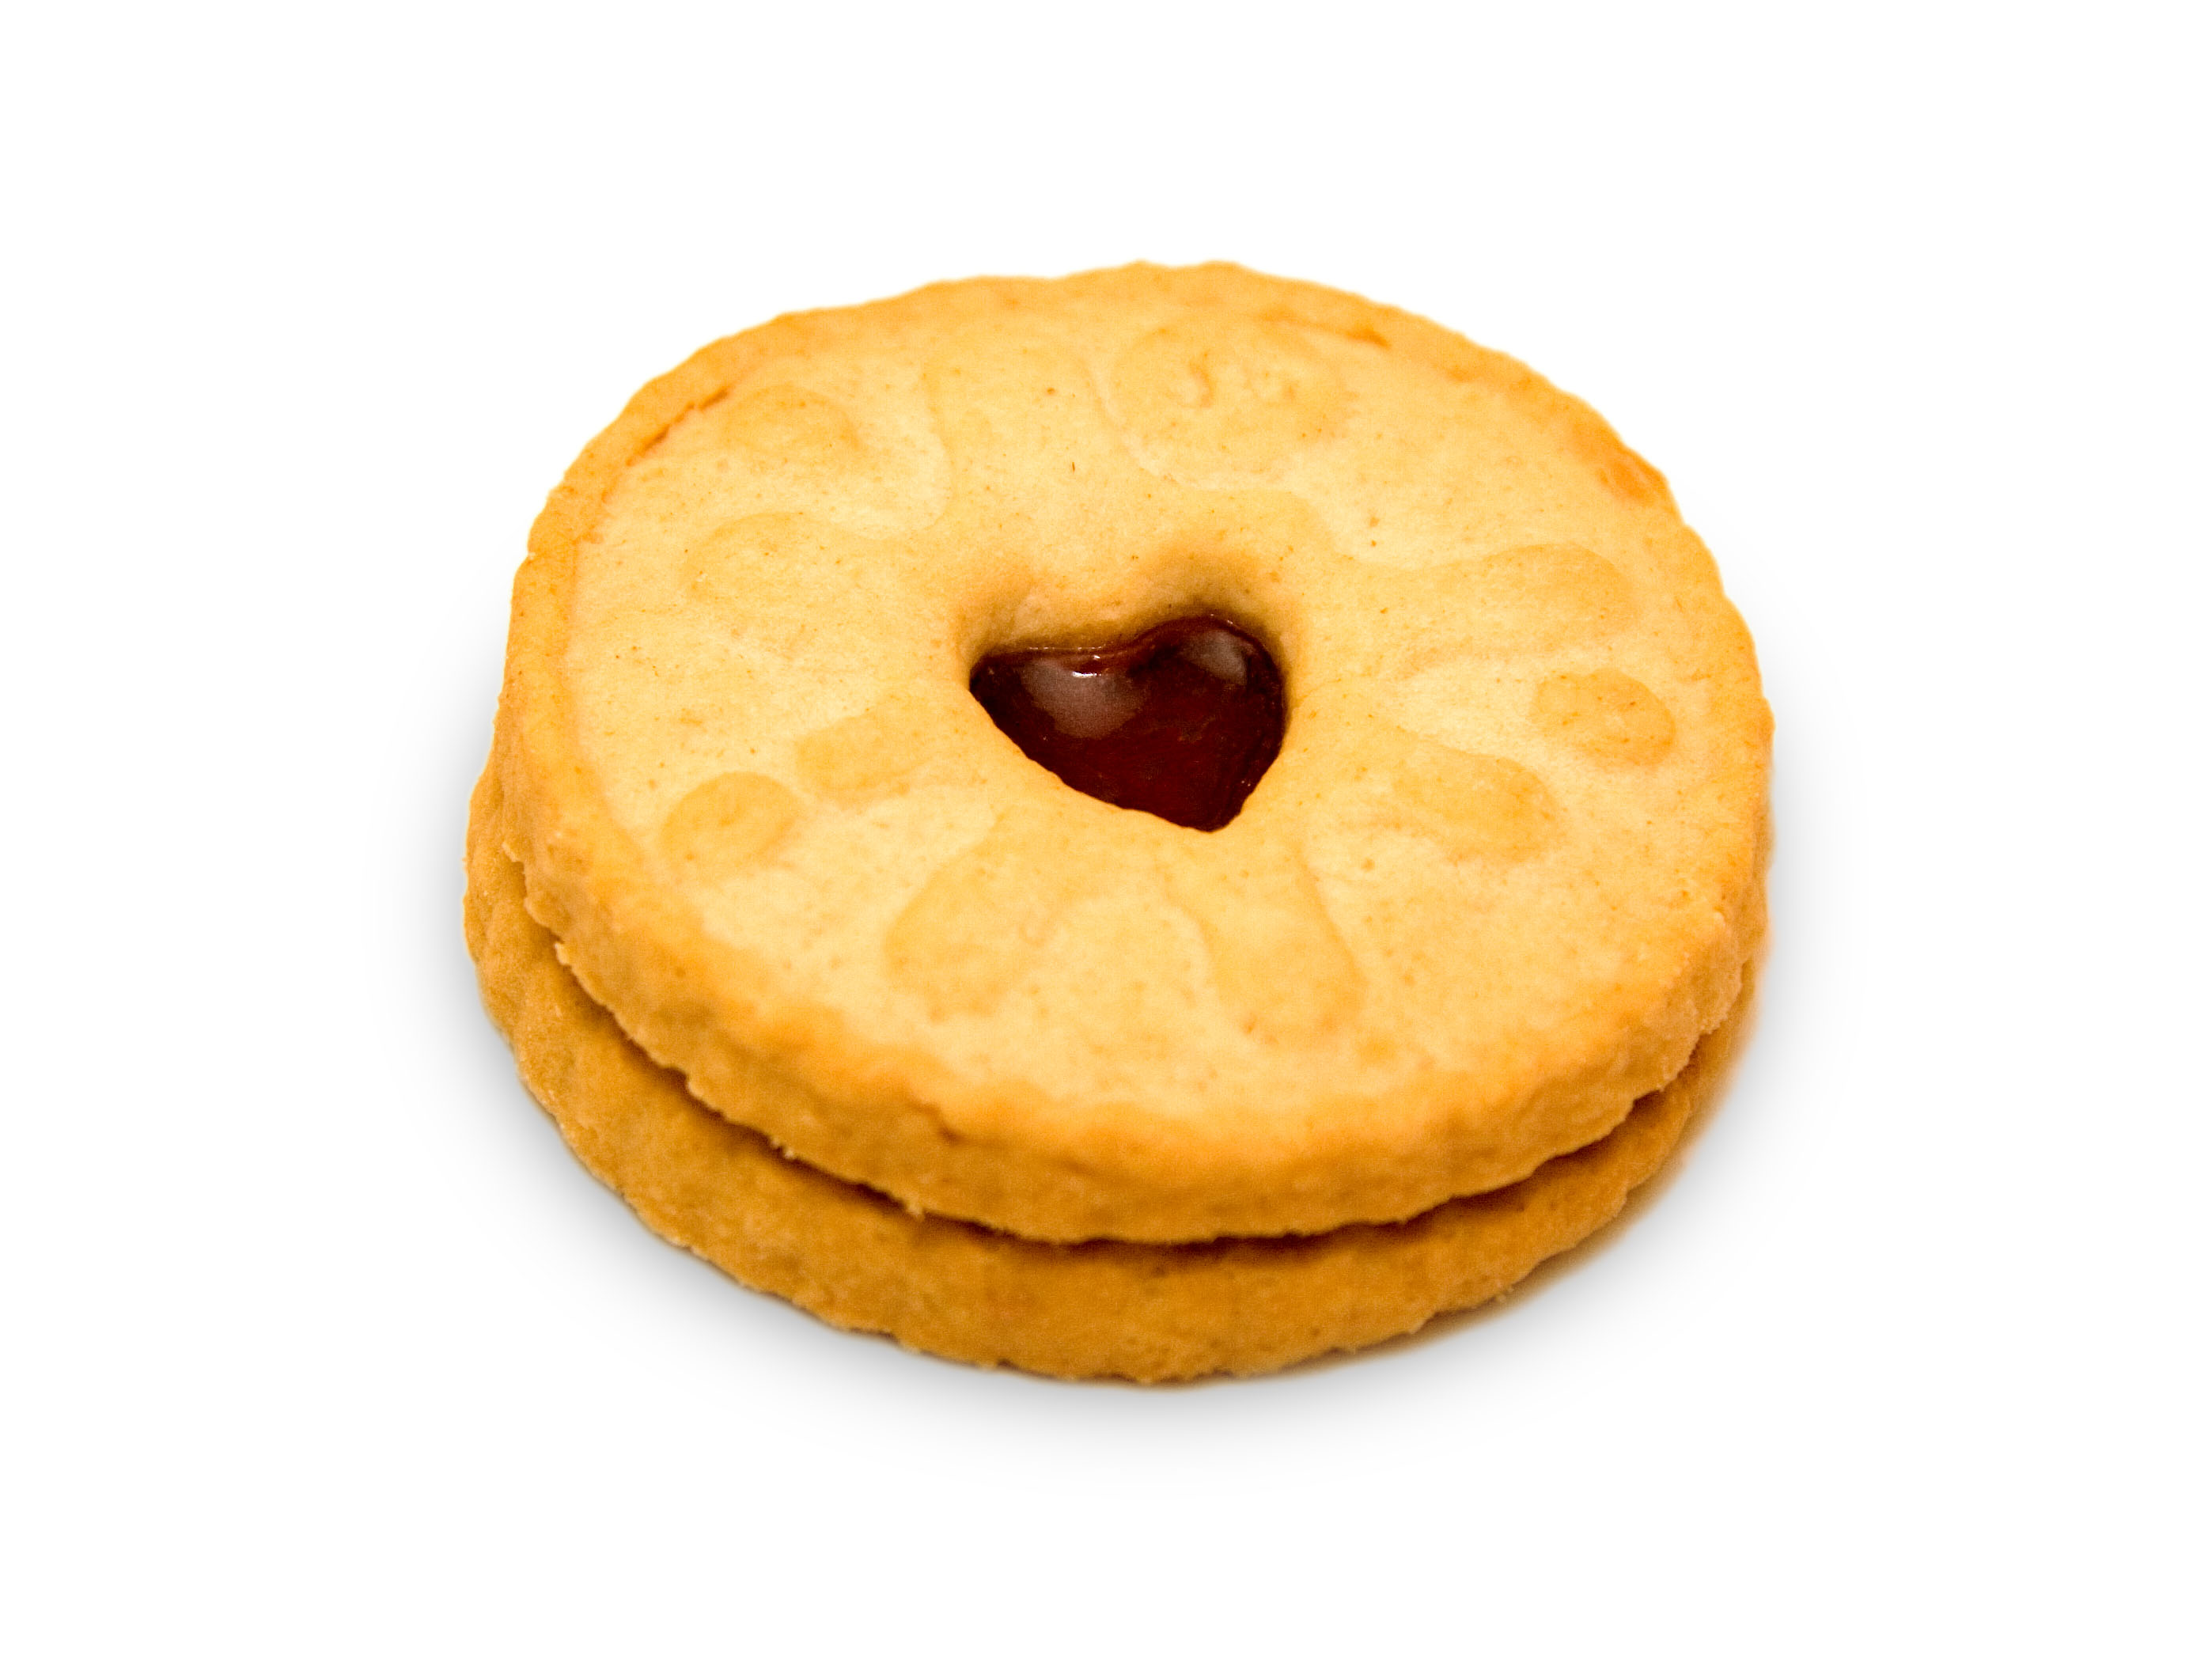 Biscuit clipart jammy Playbuzz The  With Of